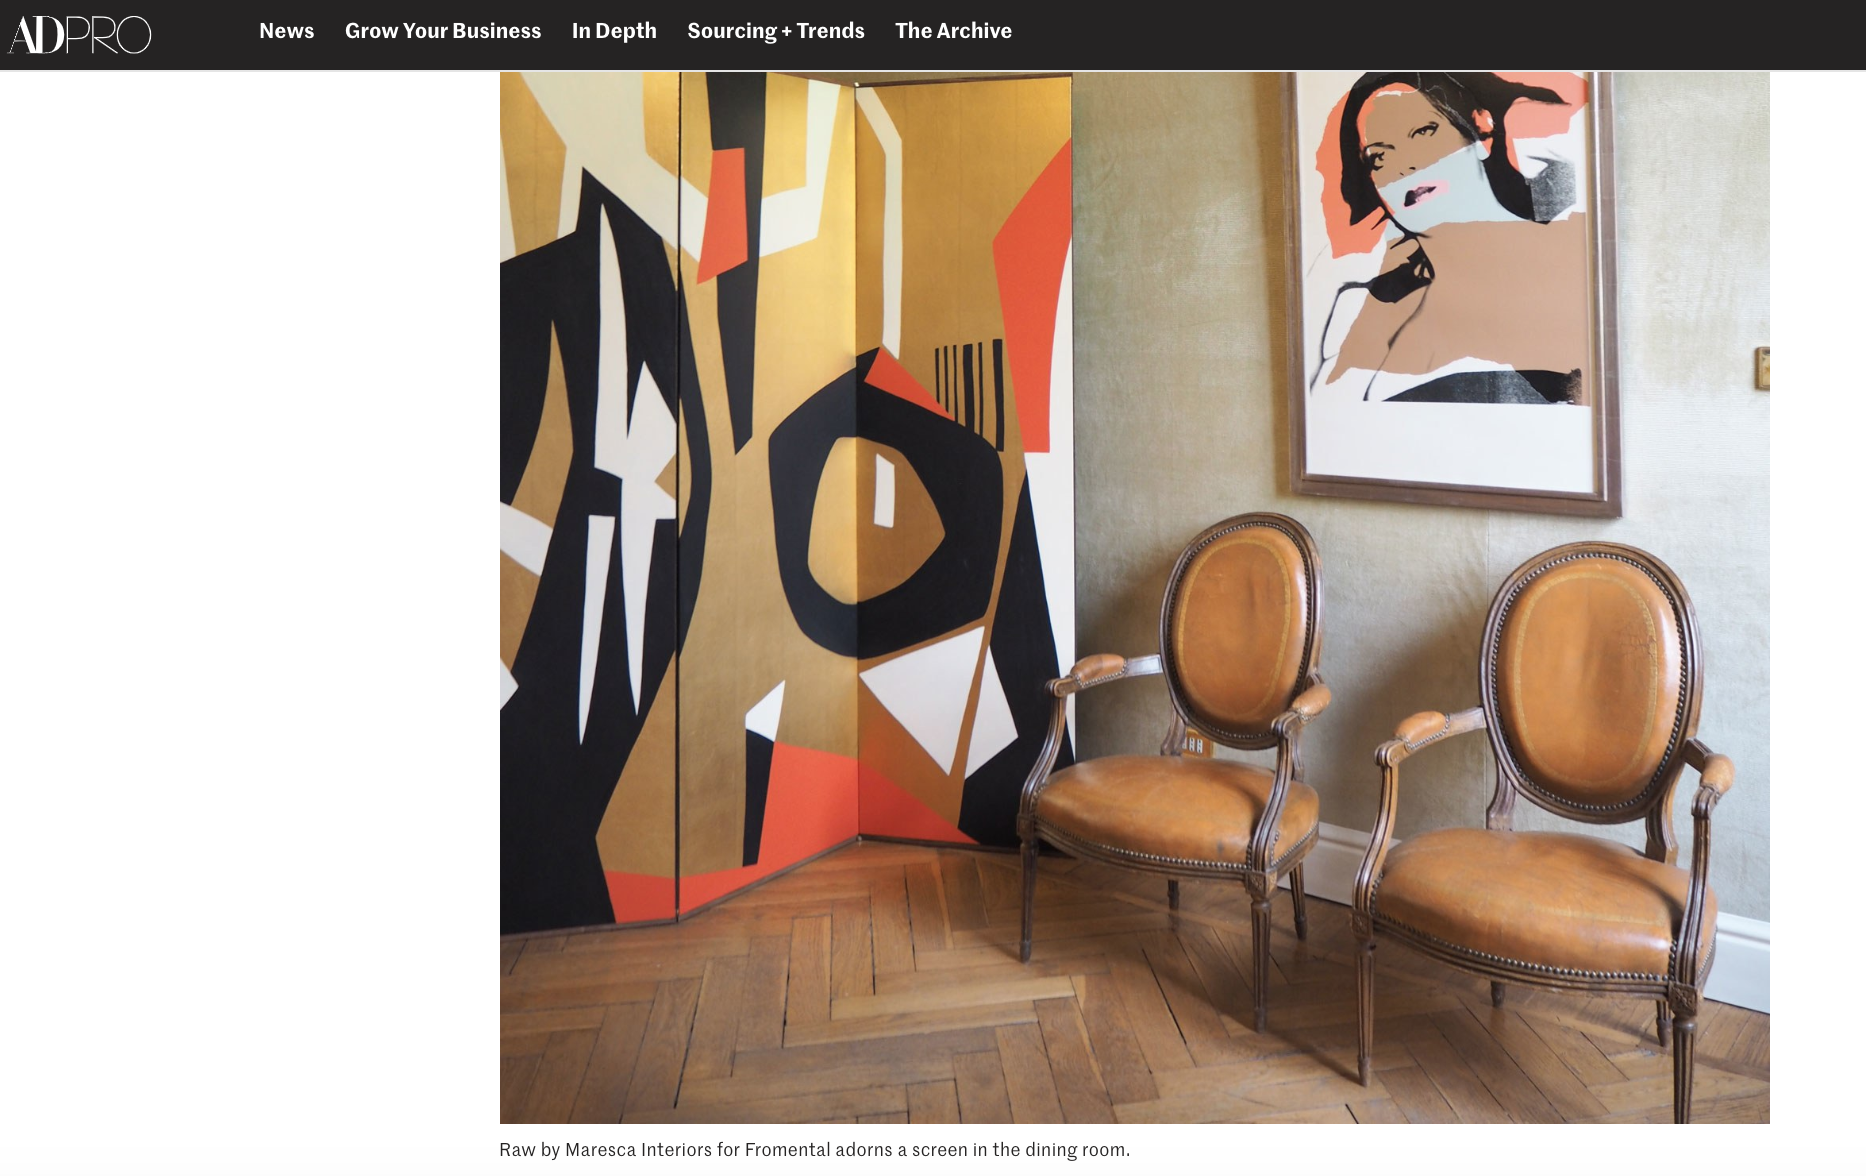 AD - archdigest.com - April 2019 - News story on Eric Egan and Maresca Interiors collaborations with Fromental presented at the American interior designer's new Milan studio apartment